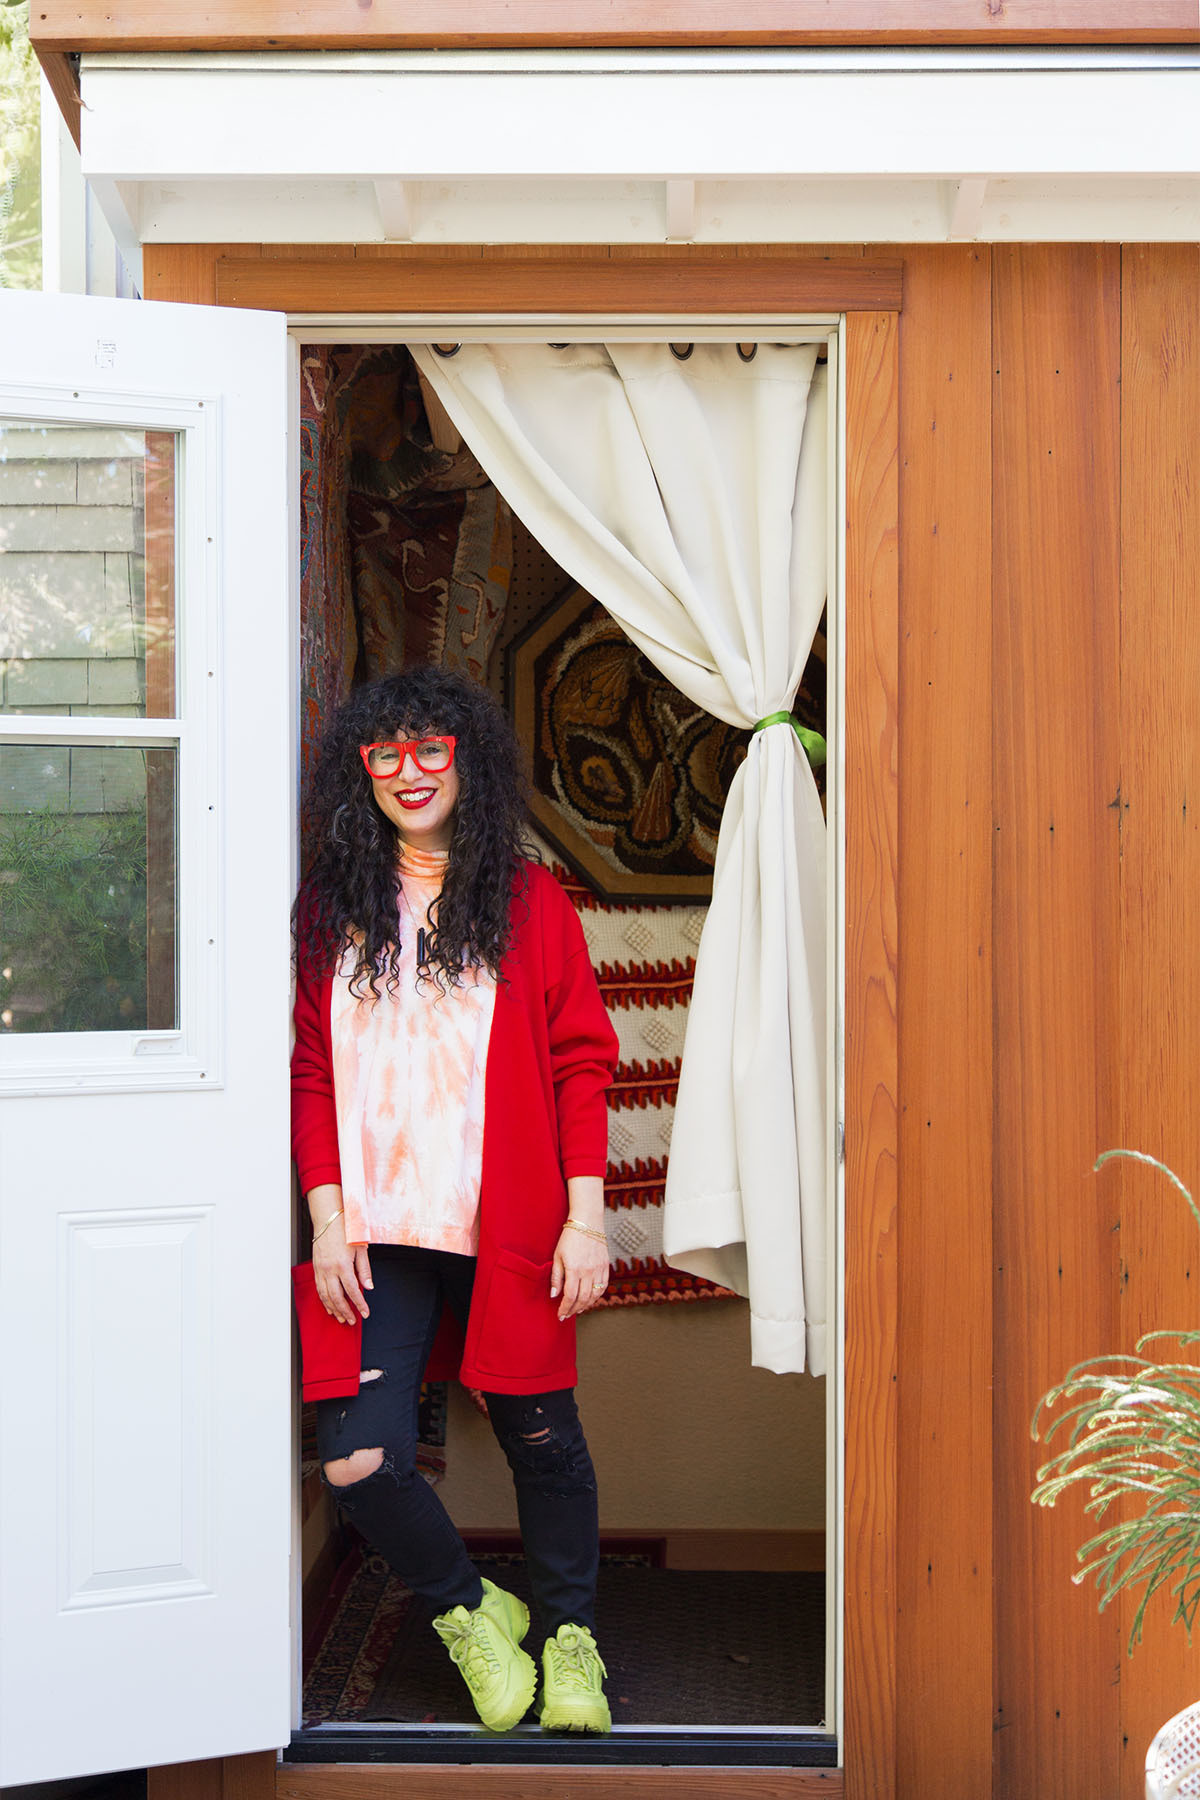 """""""I see my home as an extension of myself, much like the way I dress,"""" says Lanyadoo. """"My home is a place I want to be, a place I feel comfortable and secluded from the world. I'm not a fan of waste or fast furniture, so there's not a whole lot in my house that was bought brand new."""""""